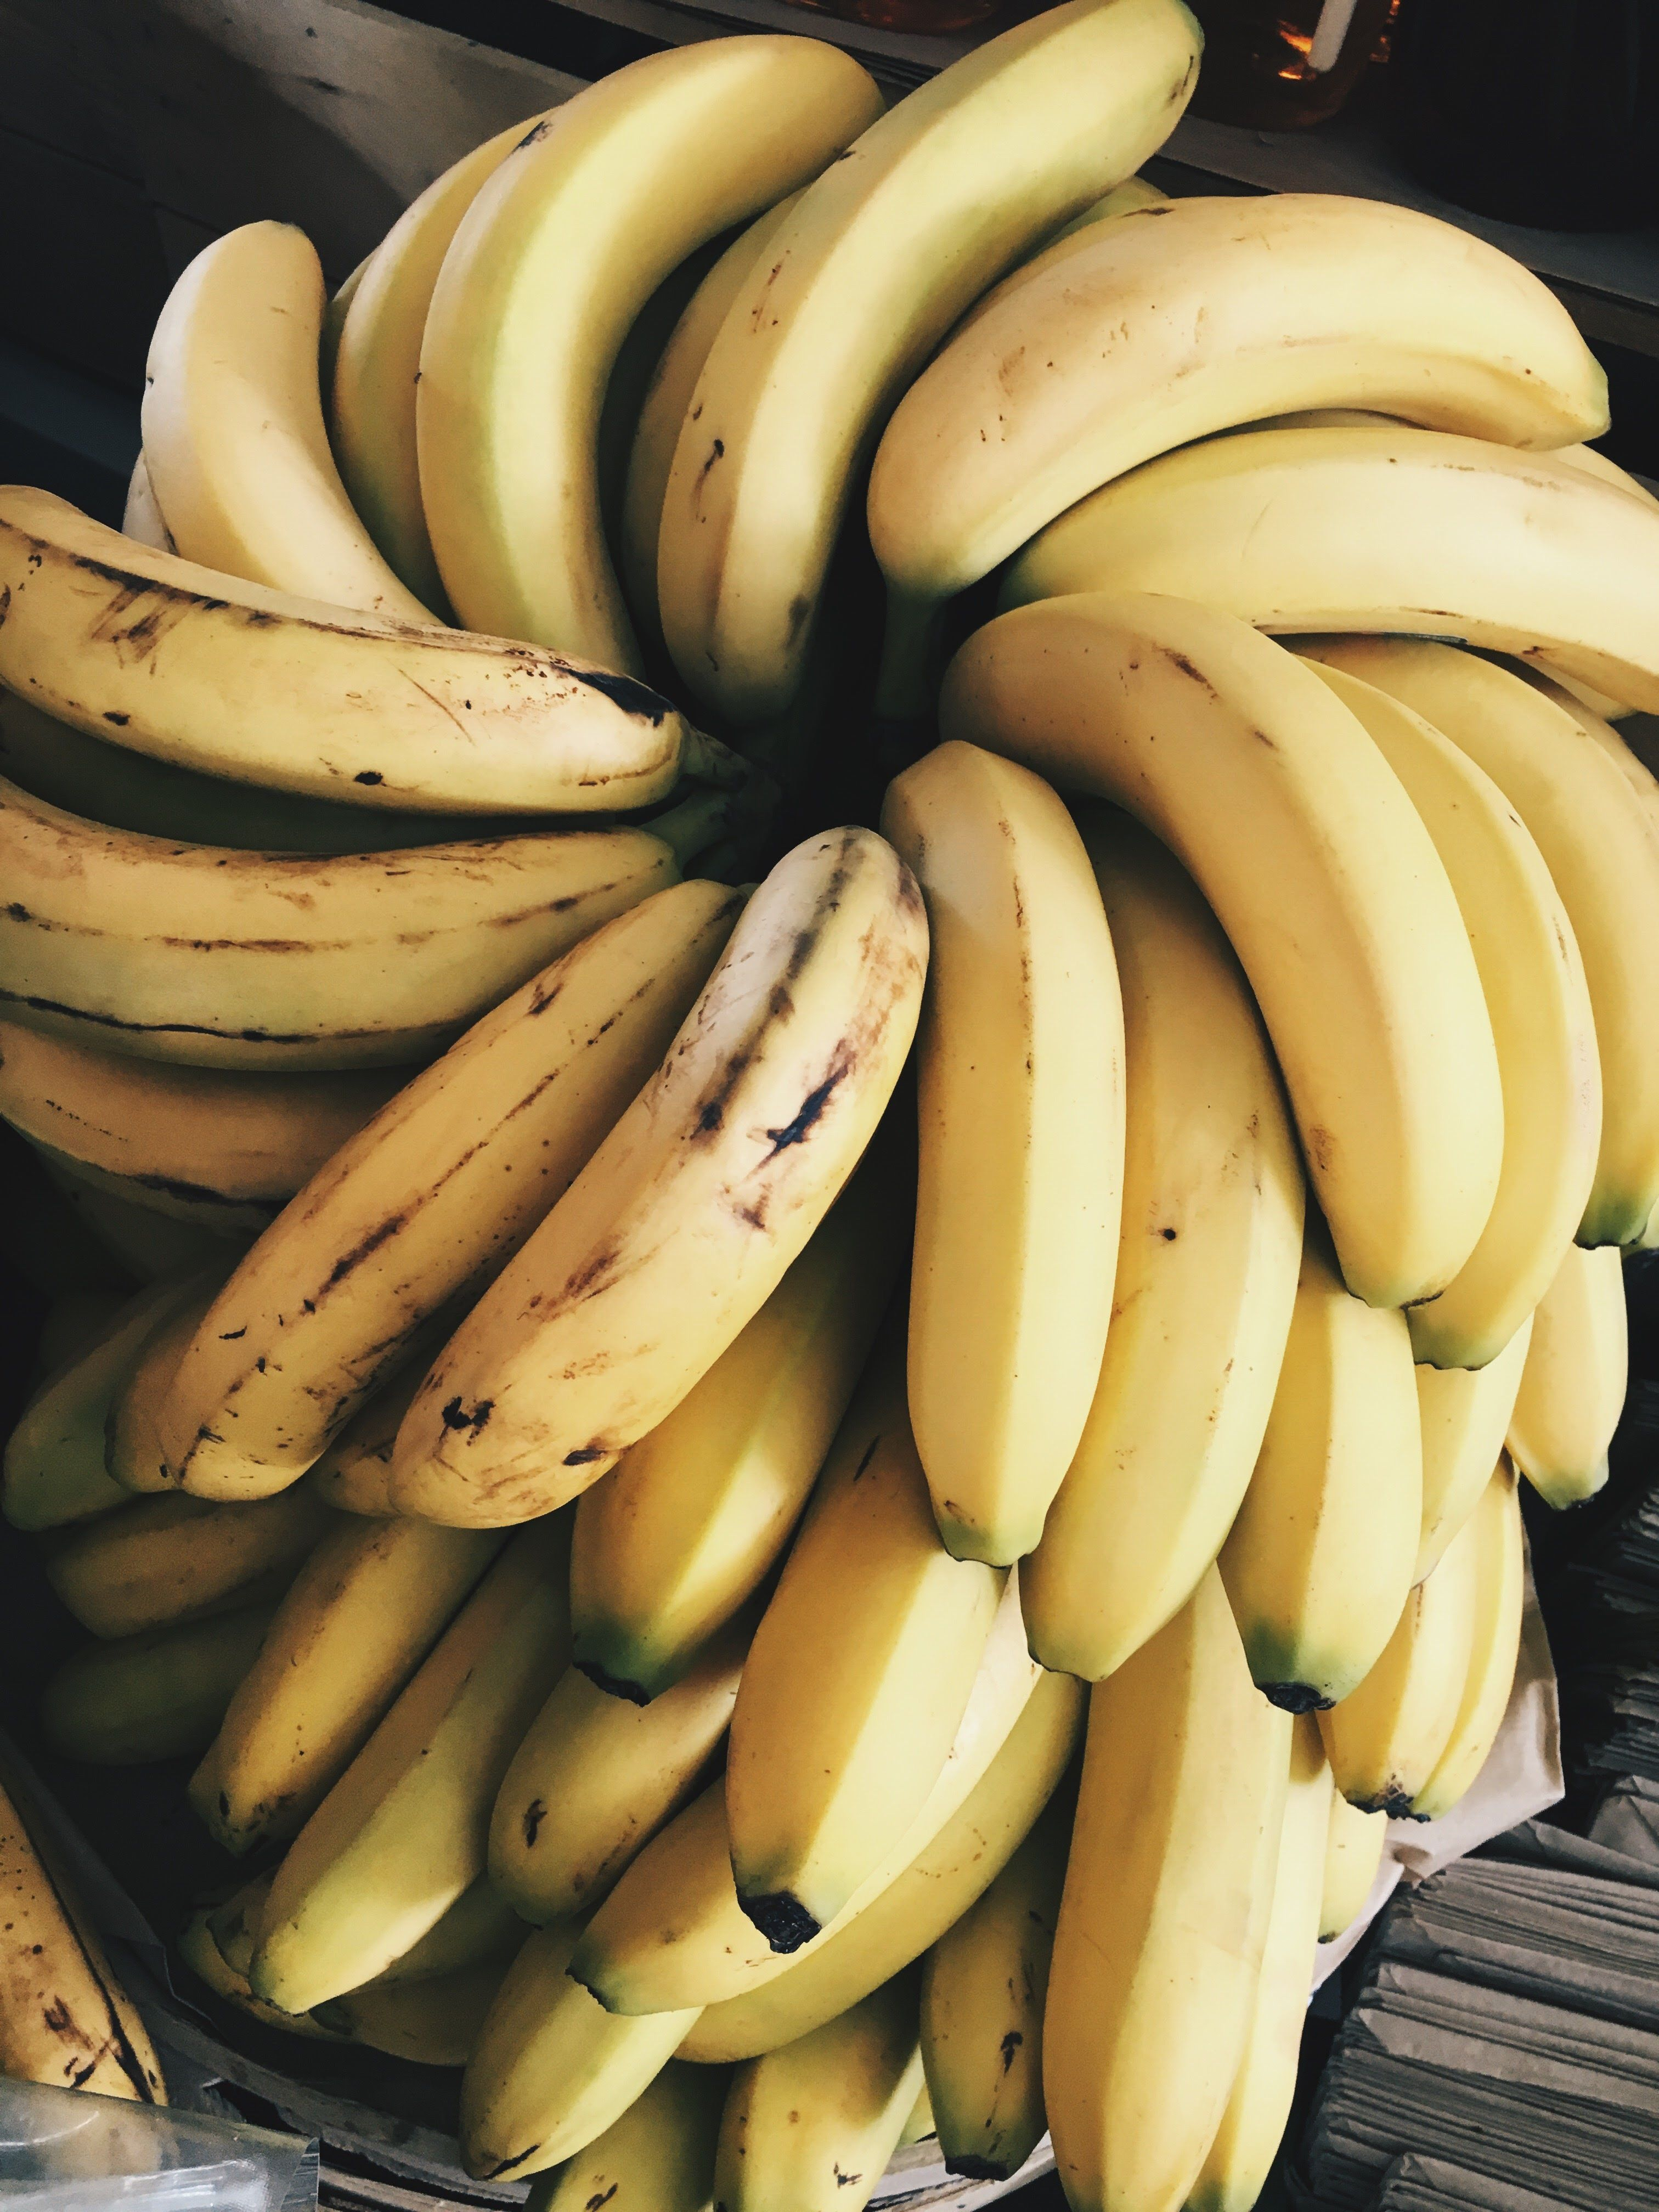 3024x4032 i hate bananas but they're so aesthetic | aesthetically appealing ...